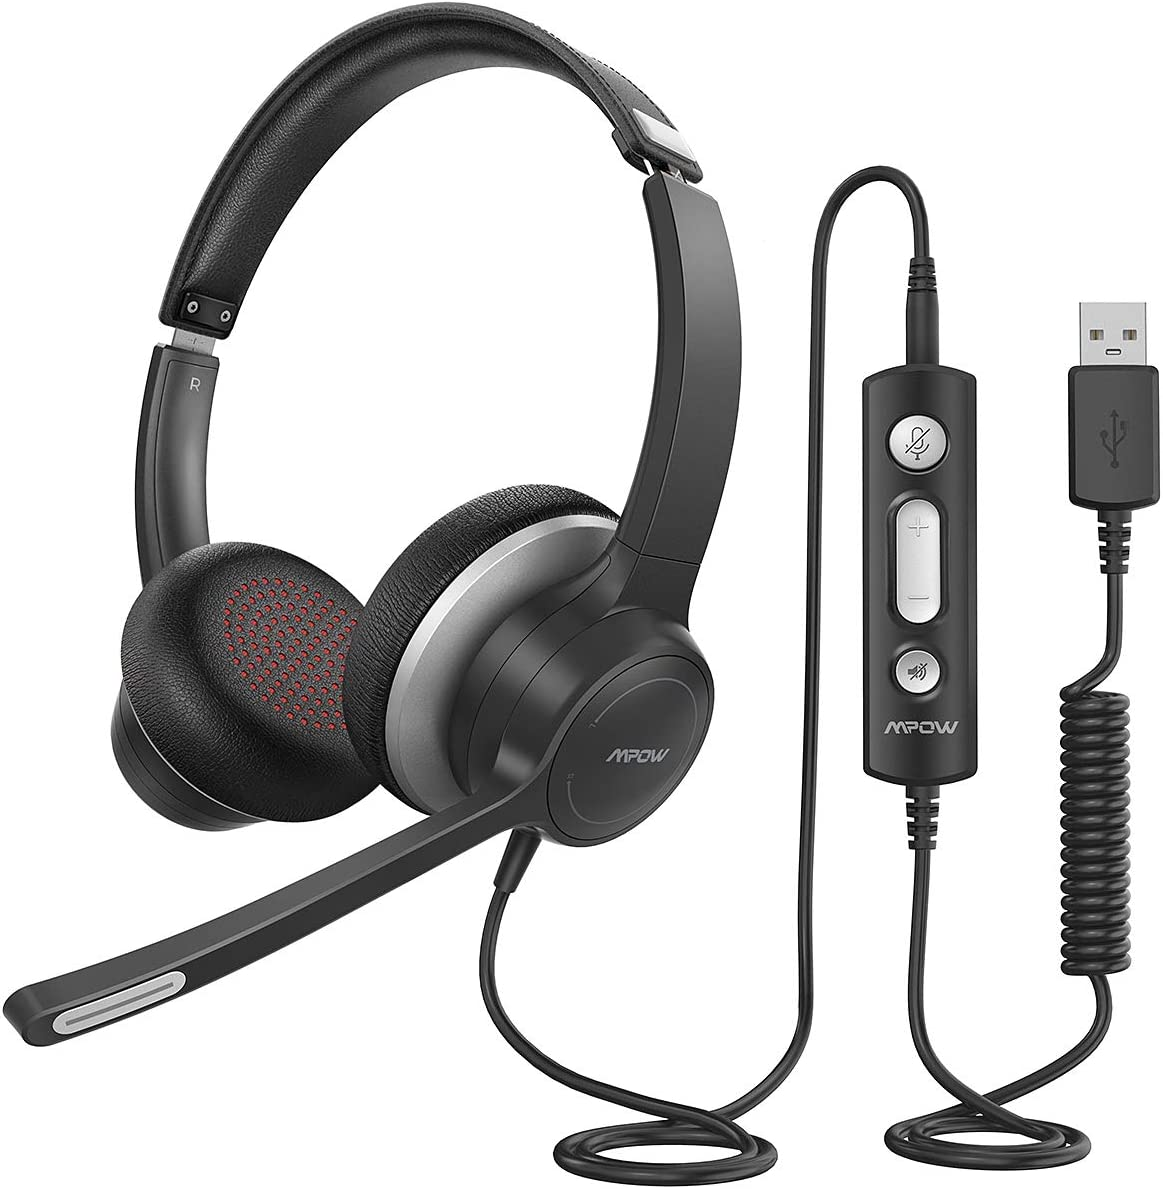 Mpow HC6 USB Headset with Microphone, Comfort-fit Office Computer Headphone, On-Ear 3.5mm Jack Call Center Headset for Cell Phone, 270 Degree Boom Mic, in-line Control with Mute for Skype, Webinar